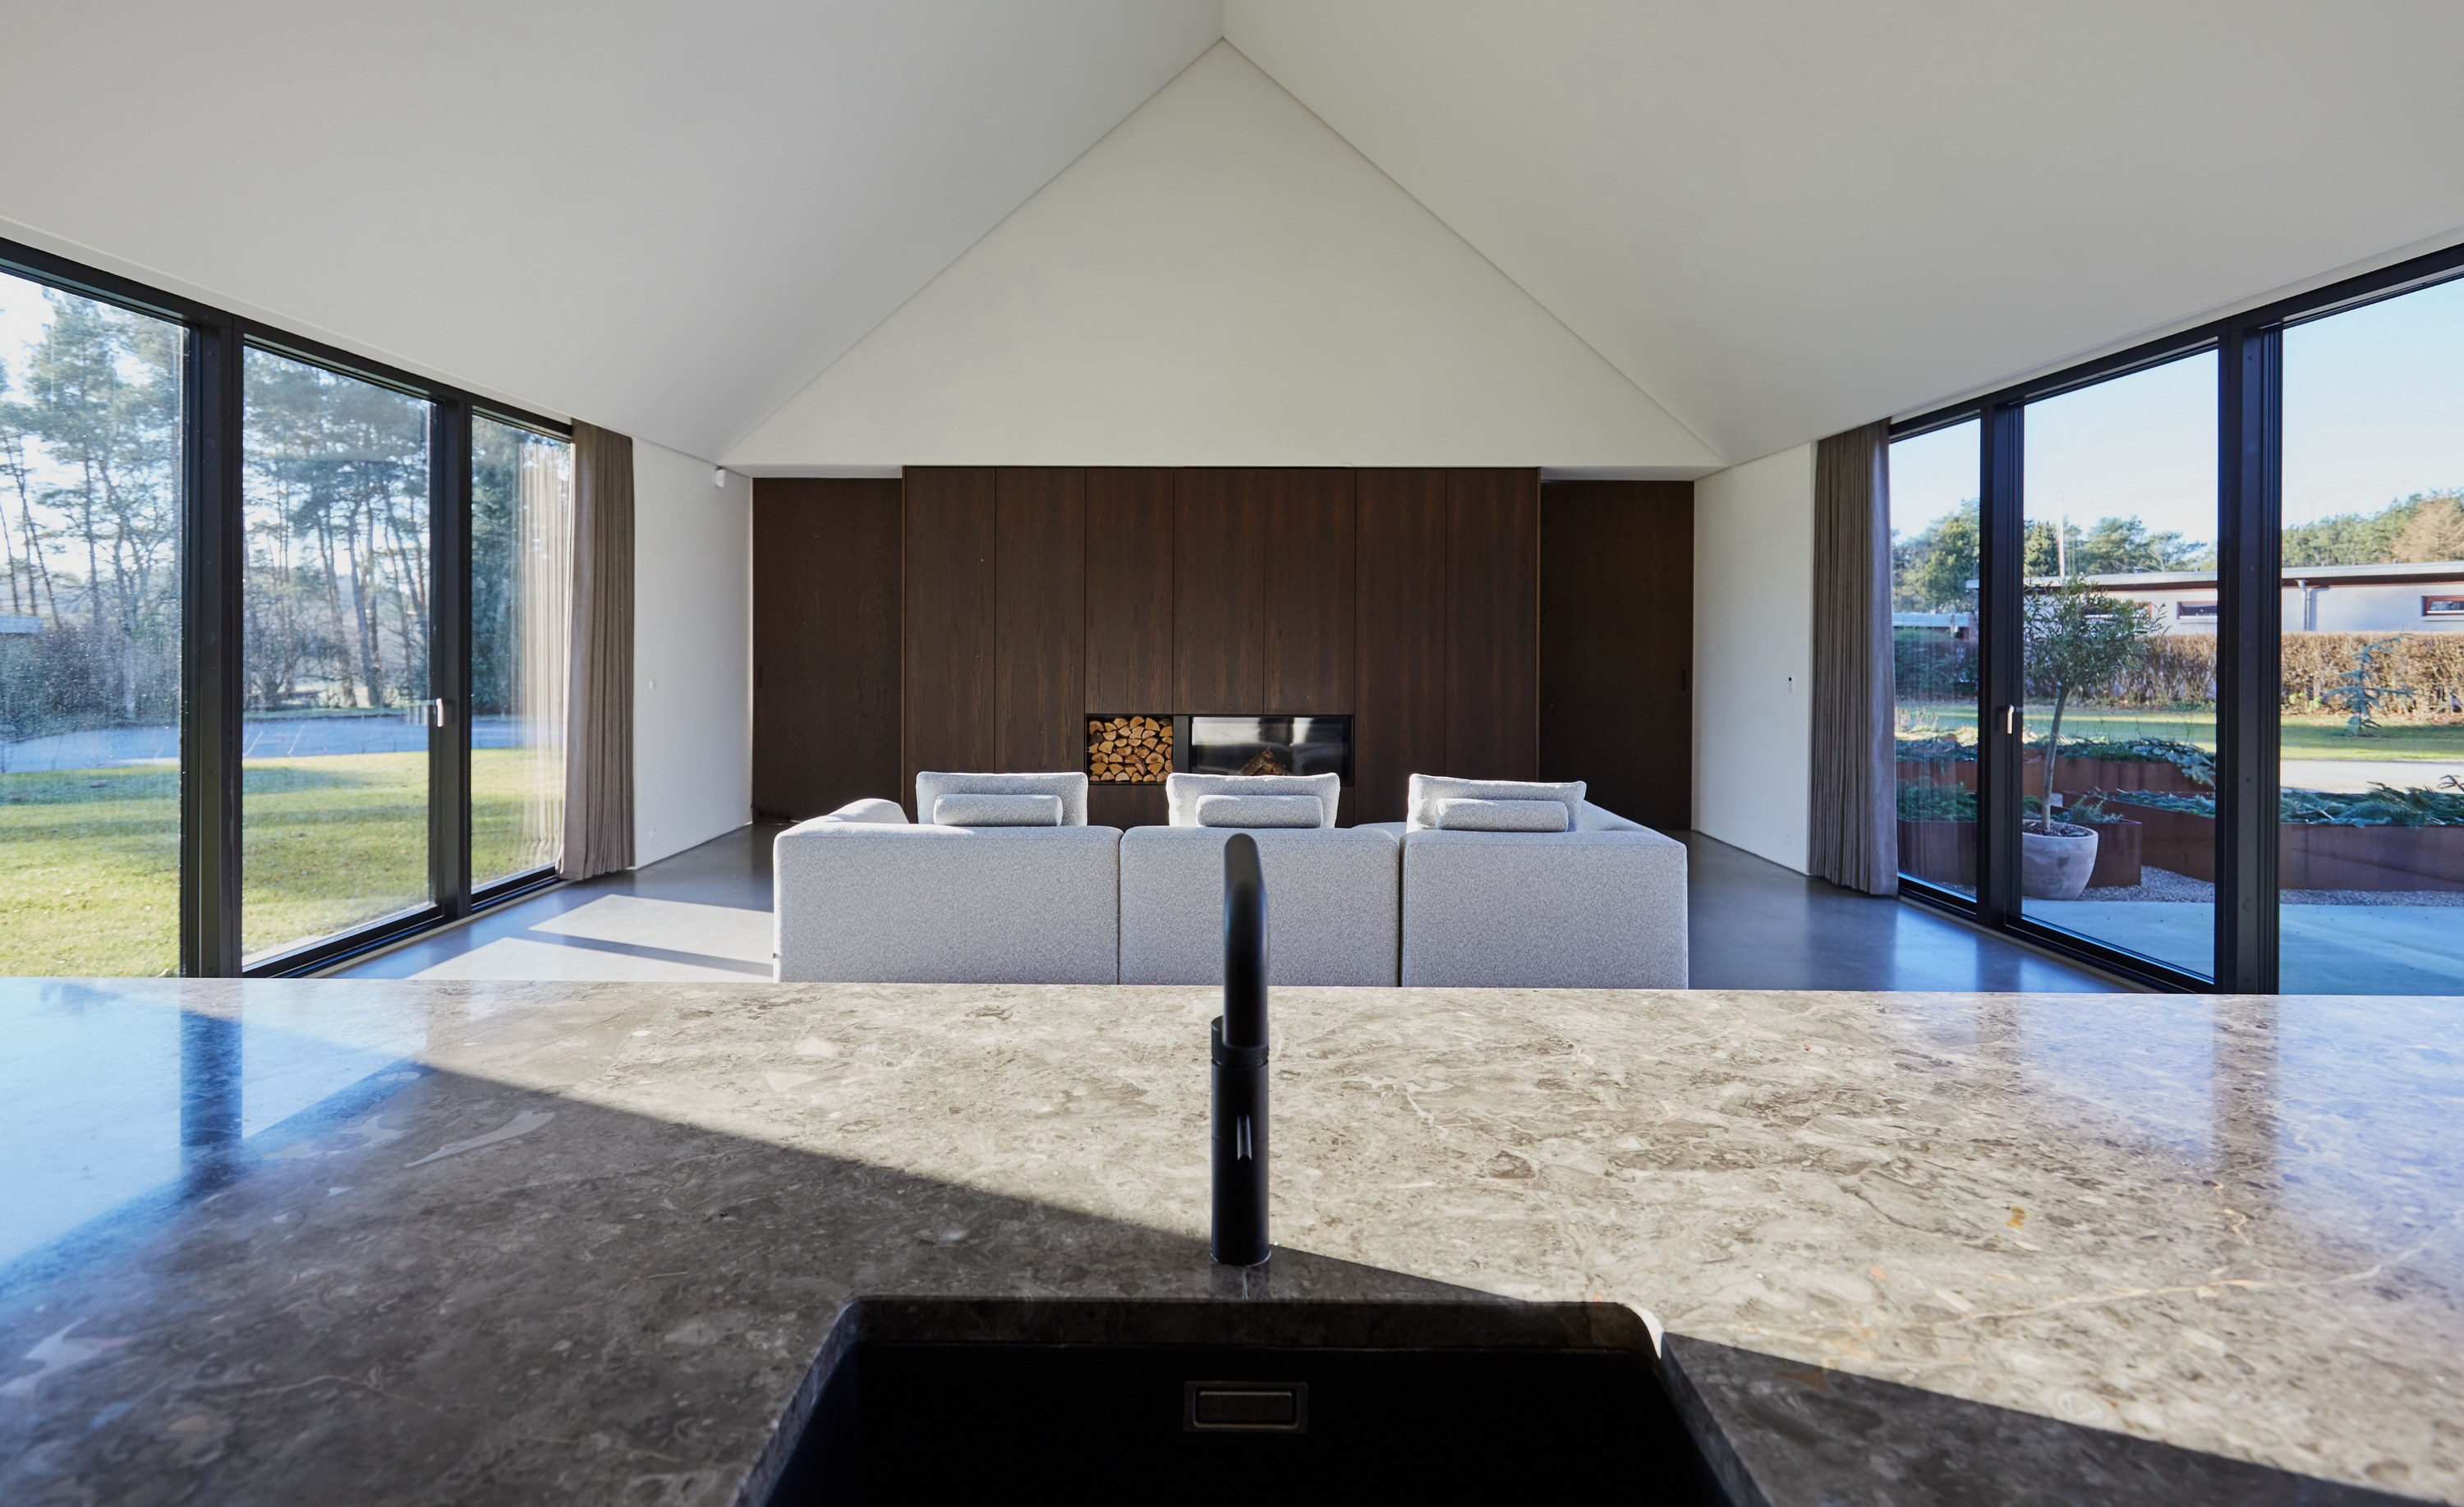 Casa Ry by Christoffersen & Weiling Architects